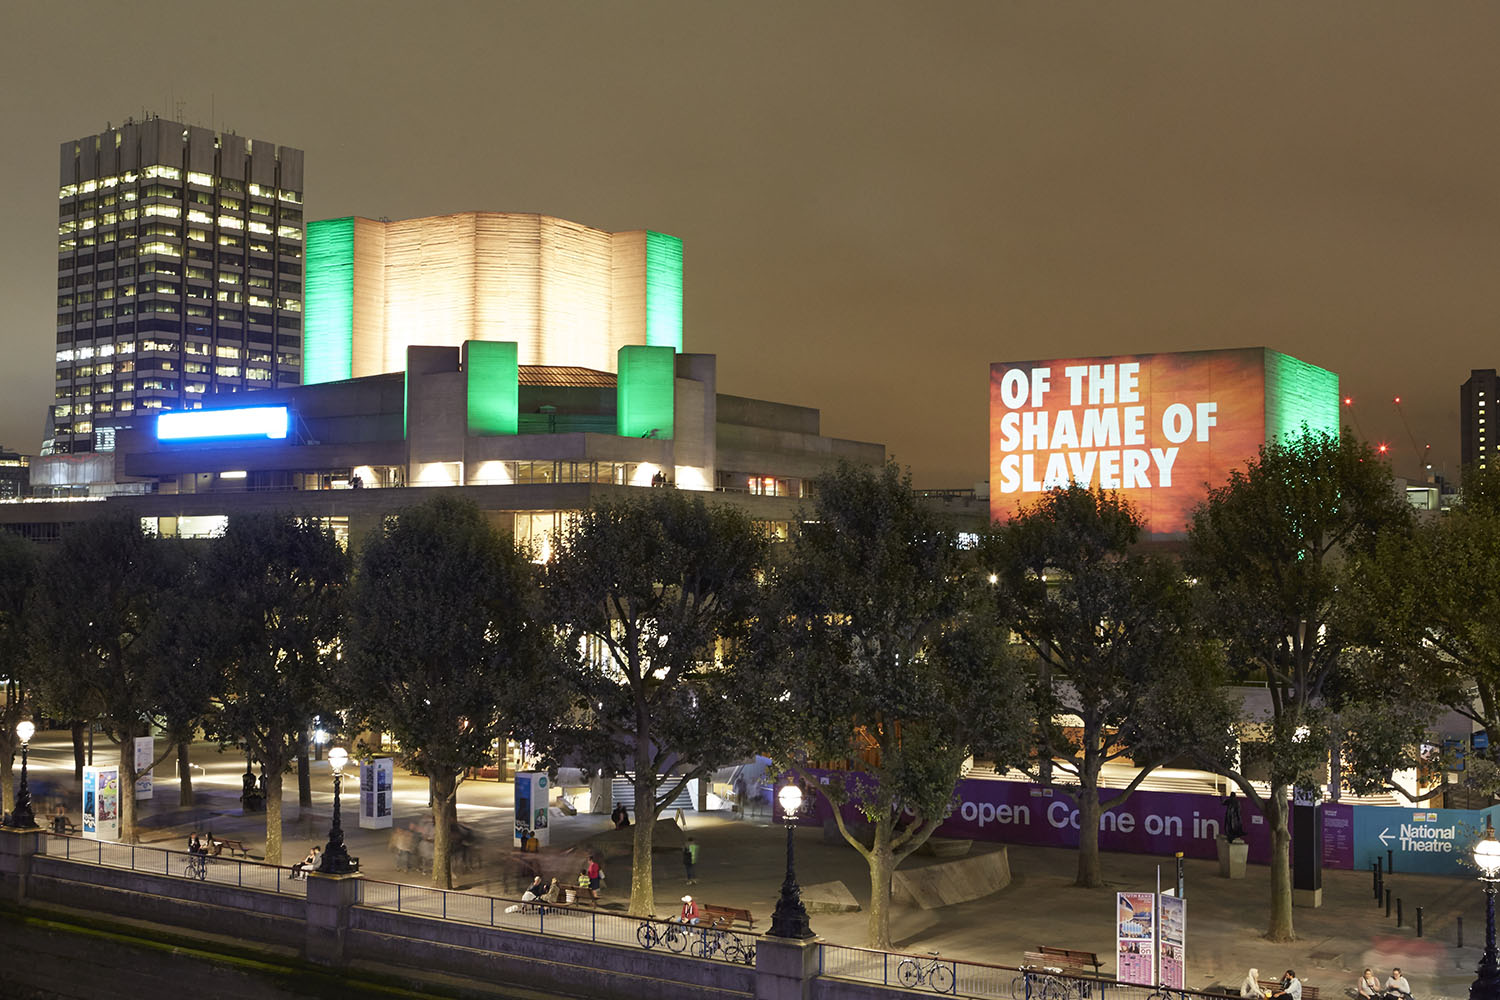 The flytower of the National Theatre in London with the words